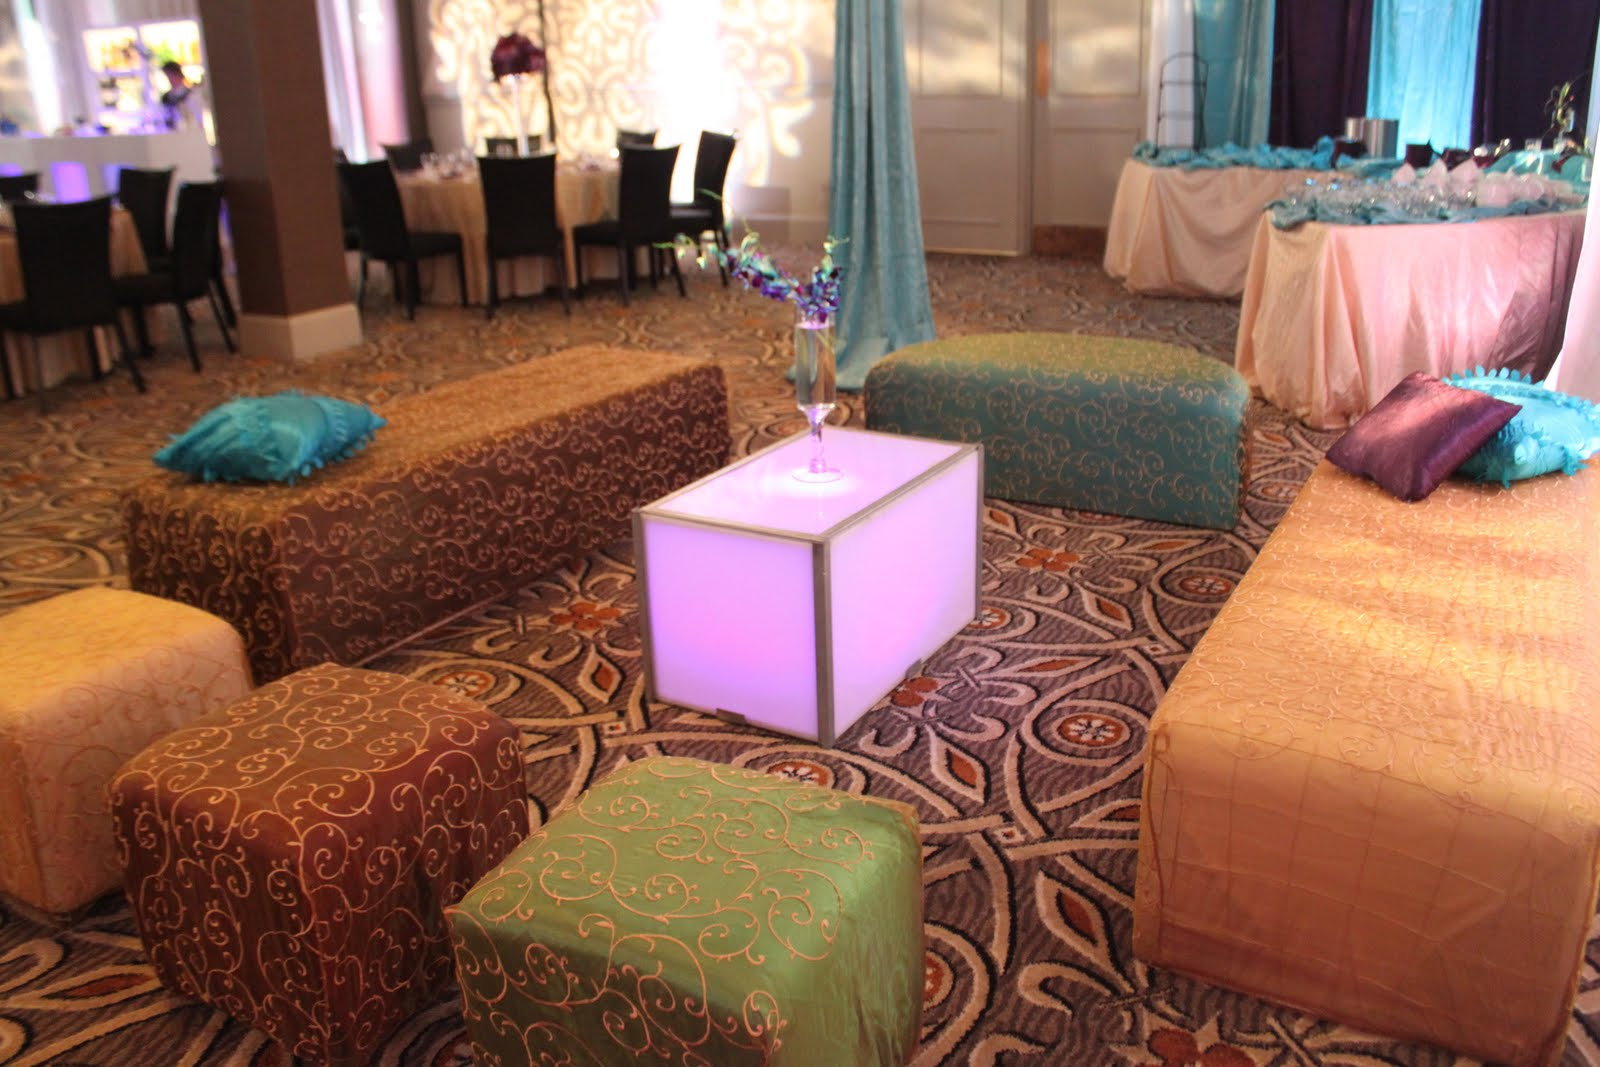 Lakewood country club event with our moroccan loungeunique lighting drapingstable cloth chargers and flowers. & Lakewood country club event with our moroccan loungeunique lighting ...